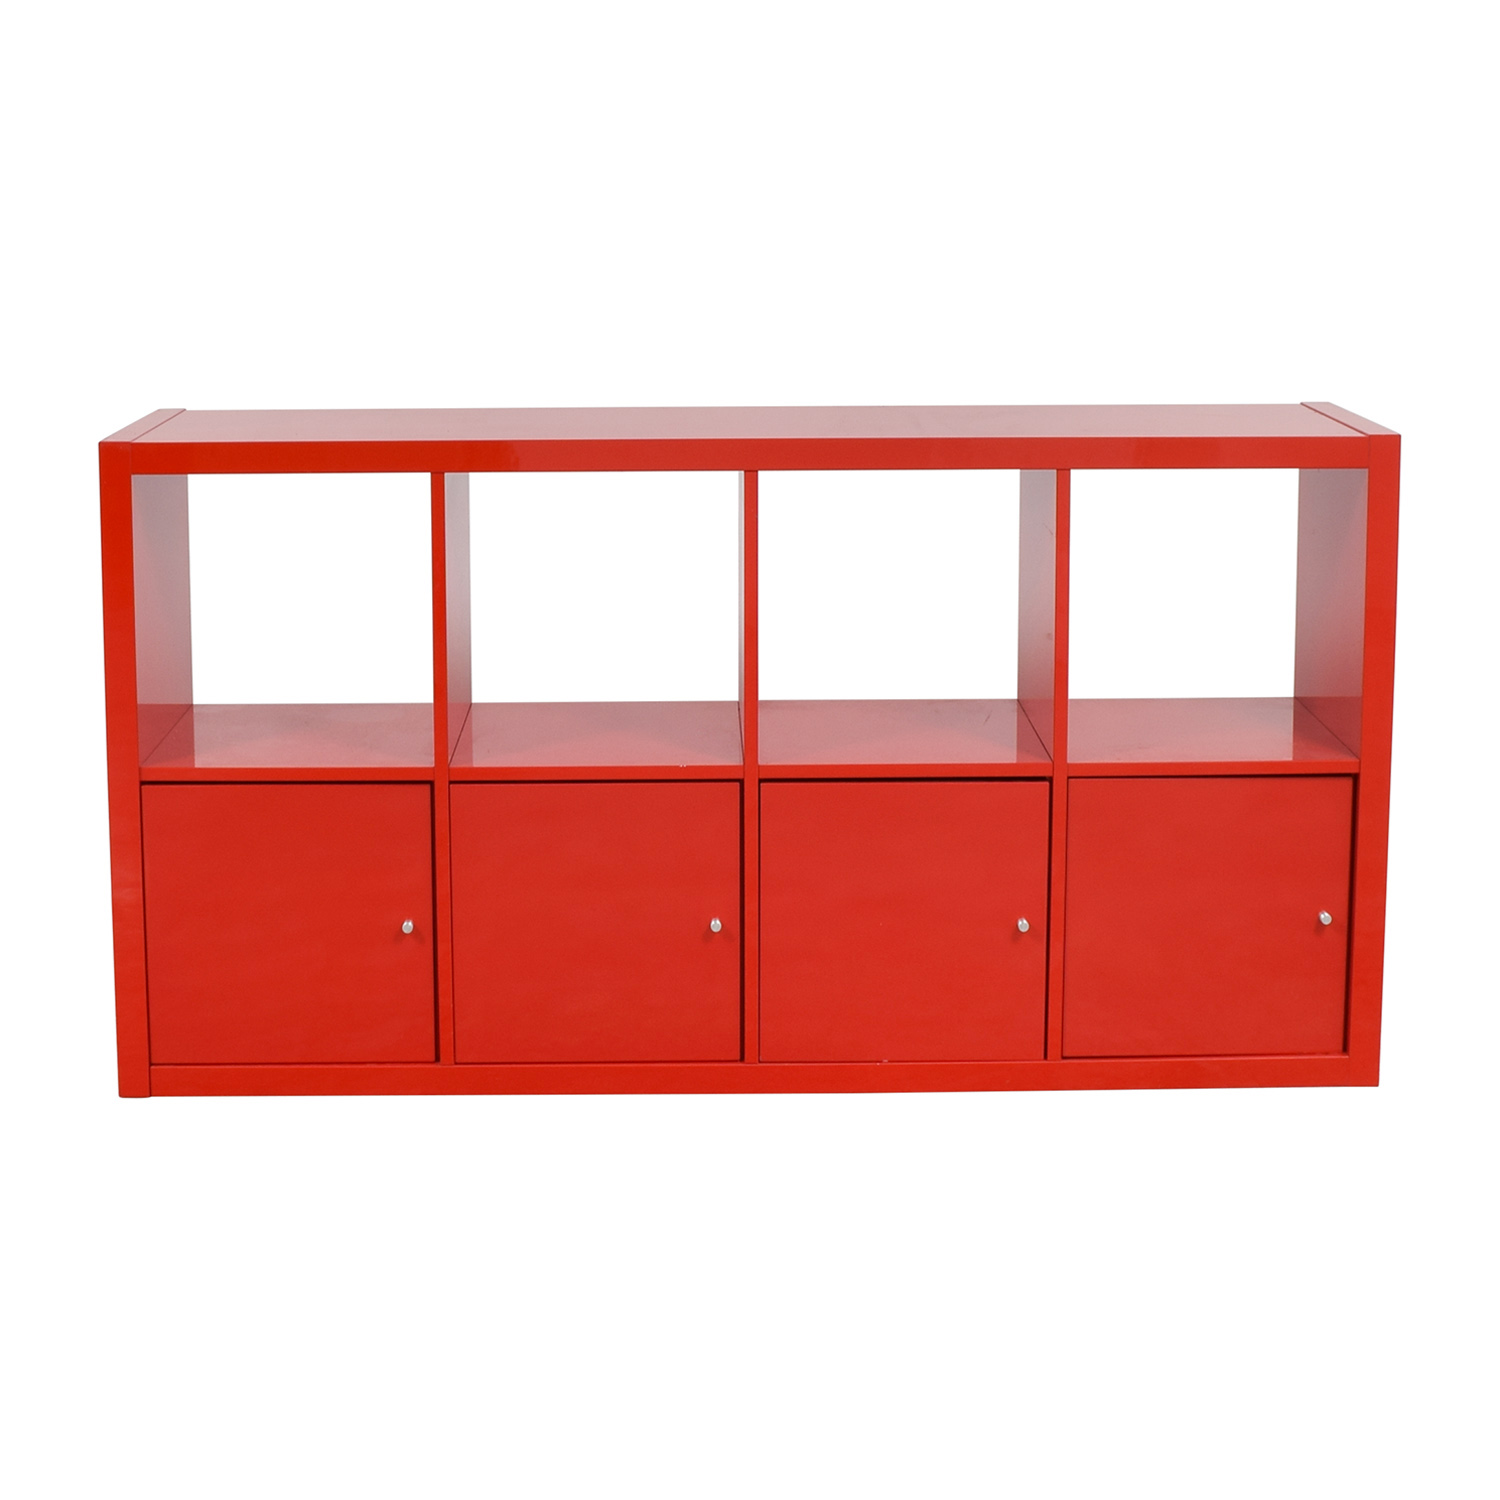 Ikea Red Storage Cabinet Best Storage Design 2017